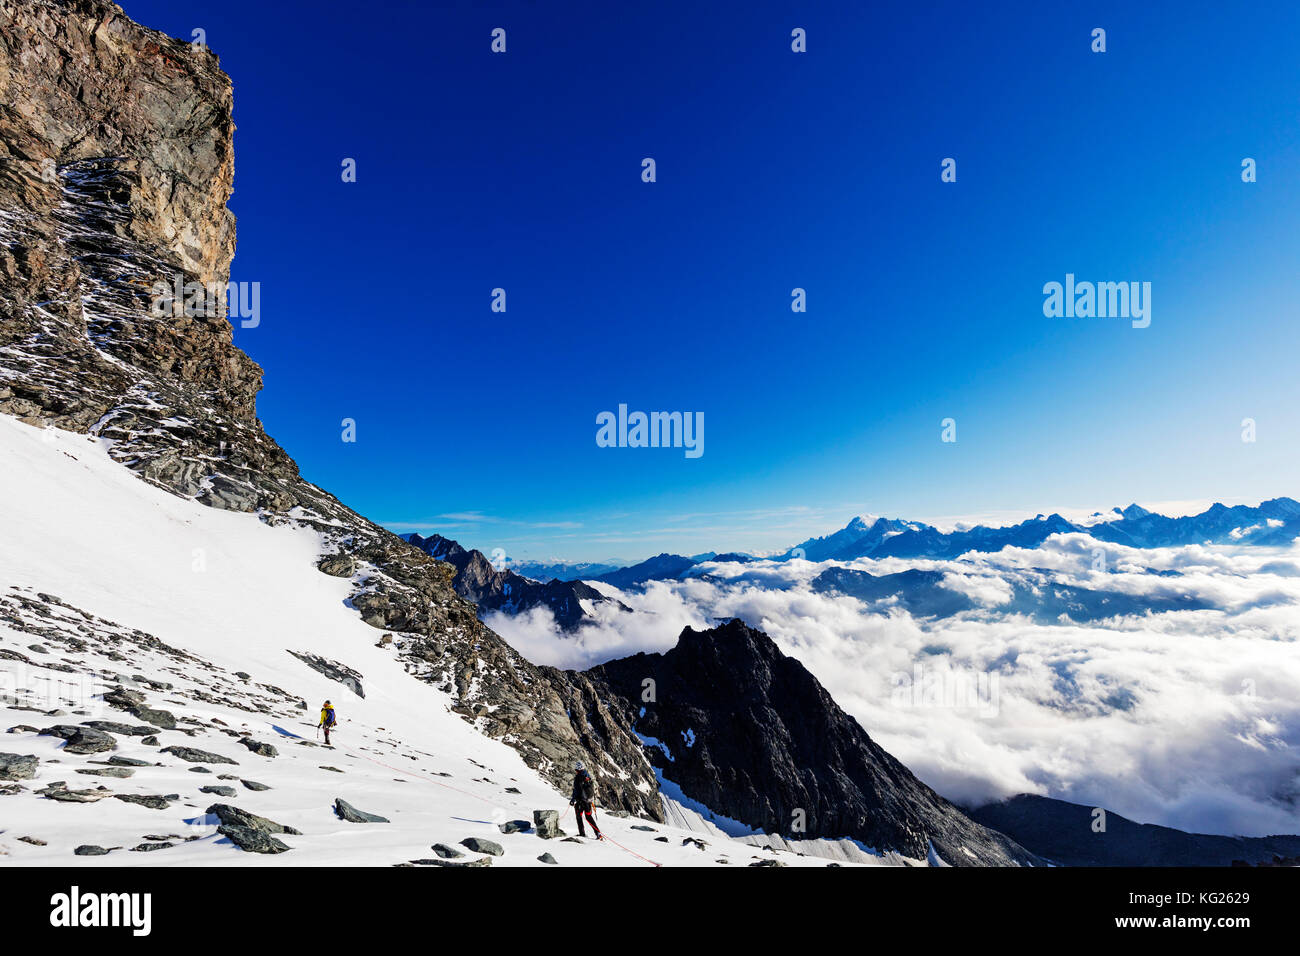 Vue de mont blanc en france du grand combin, Valais, Alpes suisses, Suisse, Europe Photo Stock